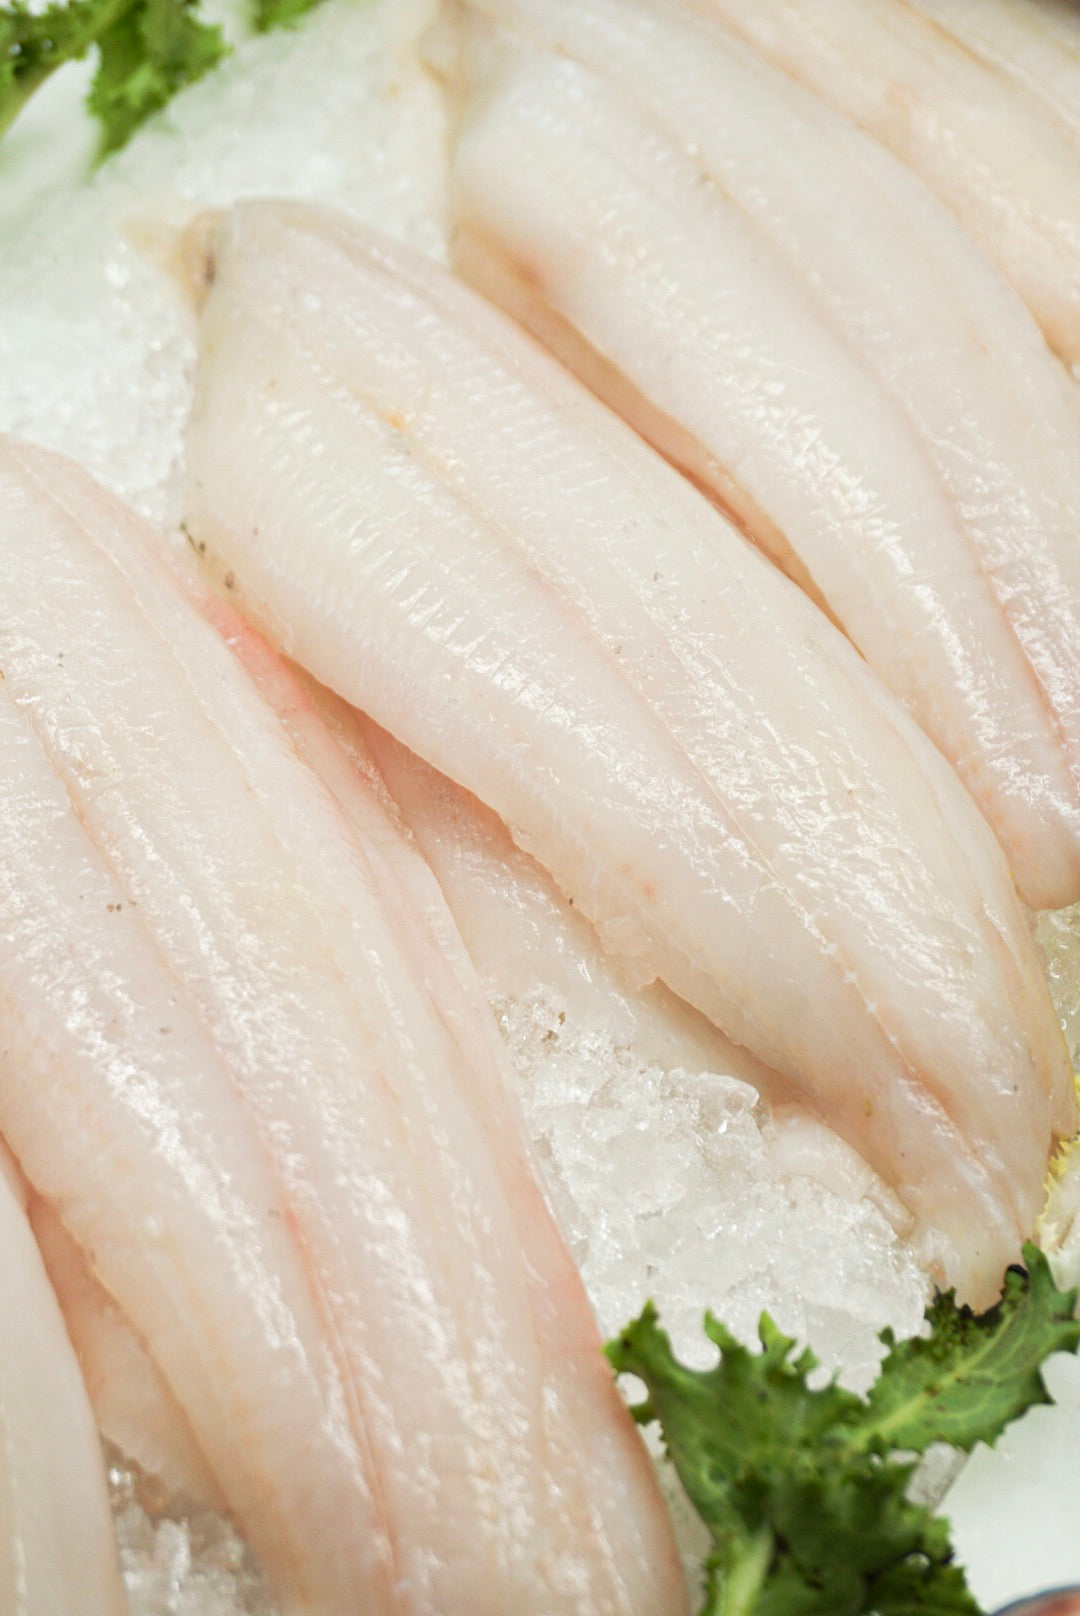 Grey Sole Fillet - Westport